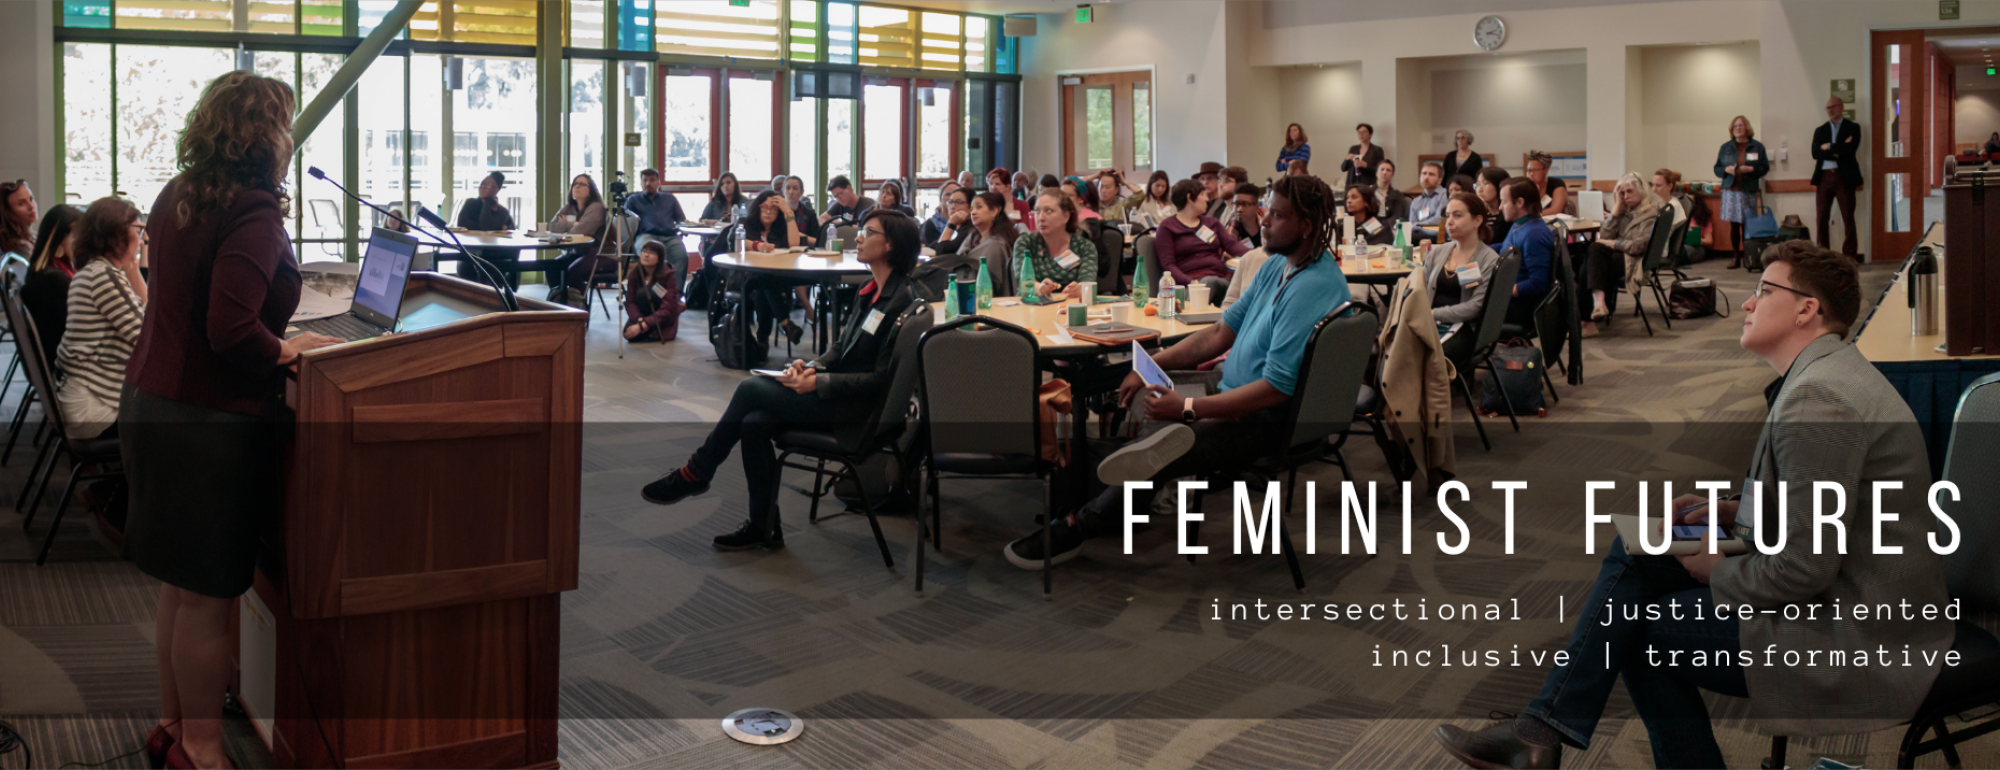 feminist research is intersectional, inclusive, justice-oriented, transformative